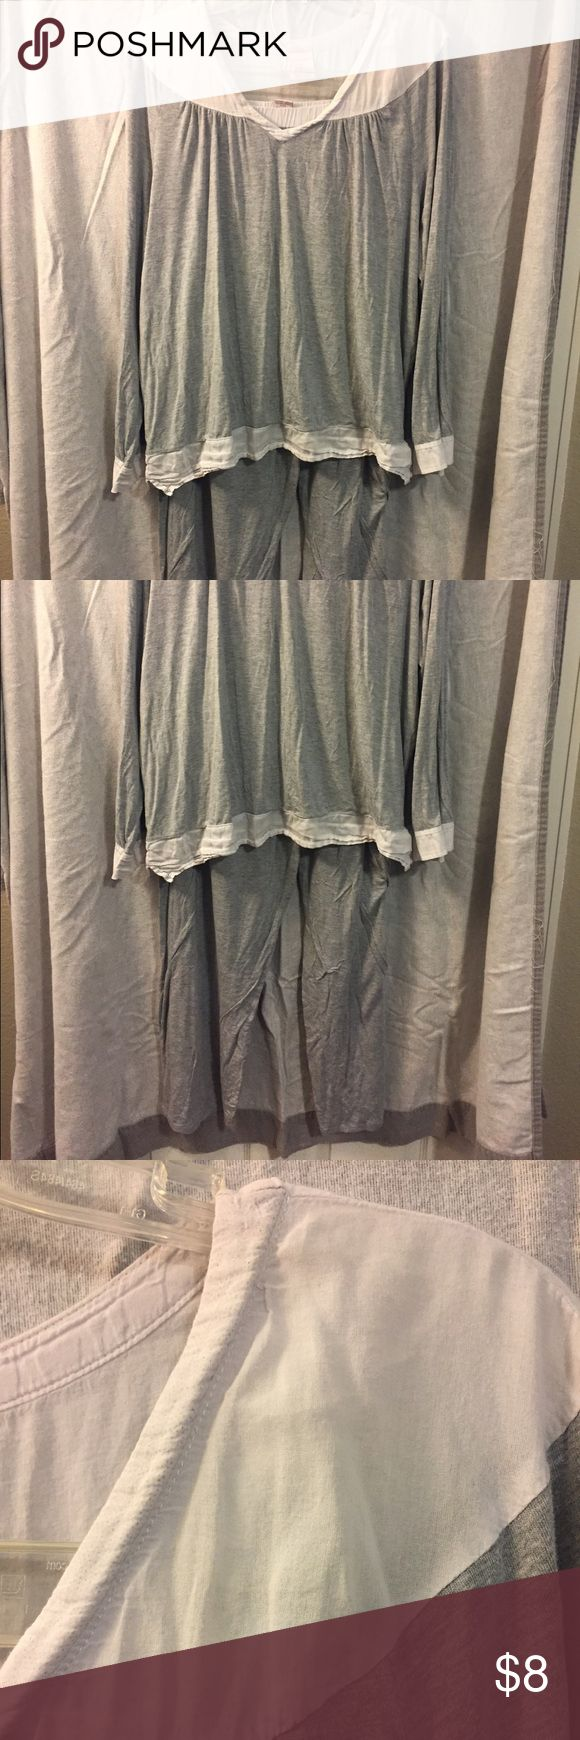 Cozy pajamas Grey stretchy Jammie's with cotton details. White has been discolored Intimates & Sleepwear Pajamas